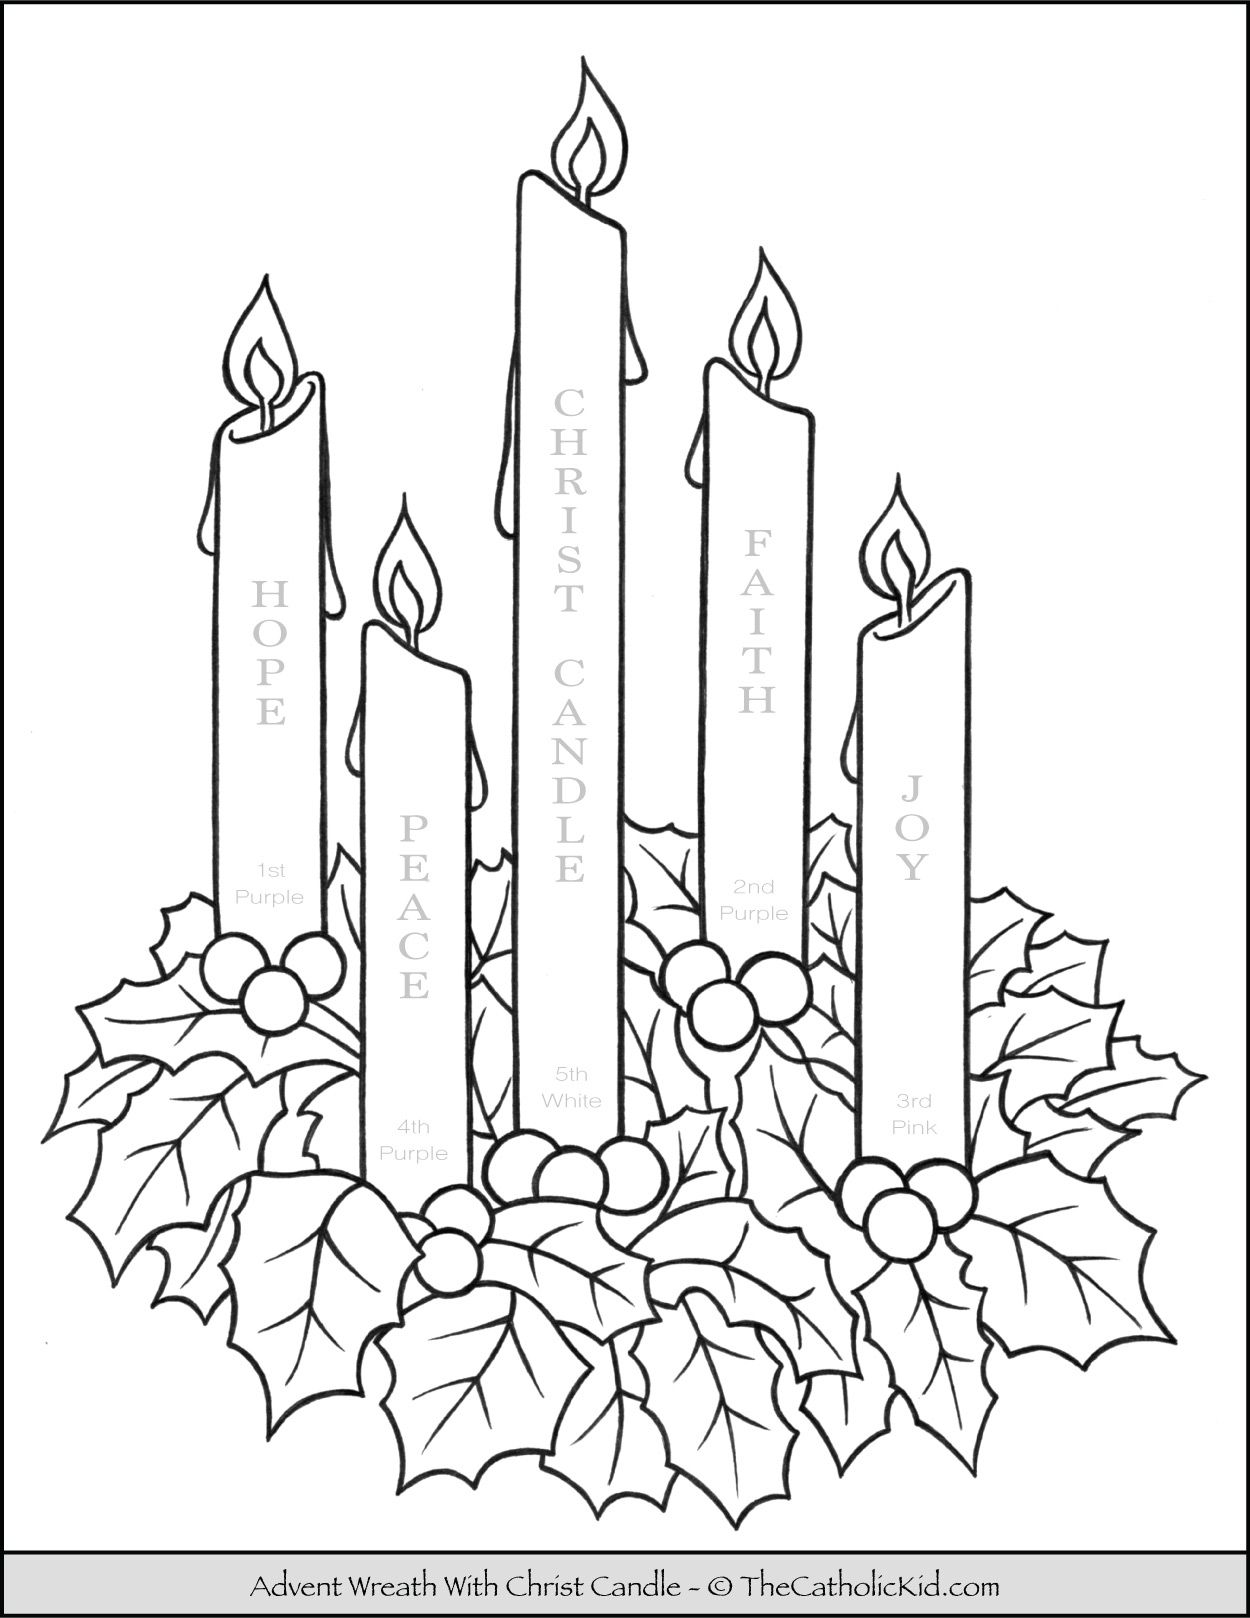 Advent Wreath Coloring Page With Candle Names Meanings Thecatholickid Com Advent Wreath Christmas Coloring Pages Peace Candle